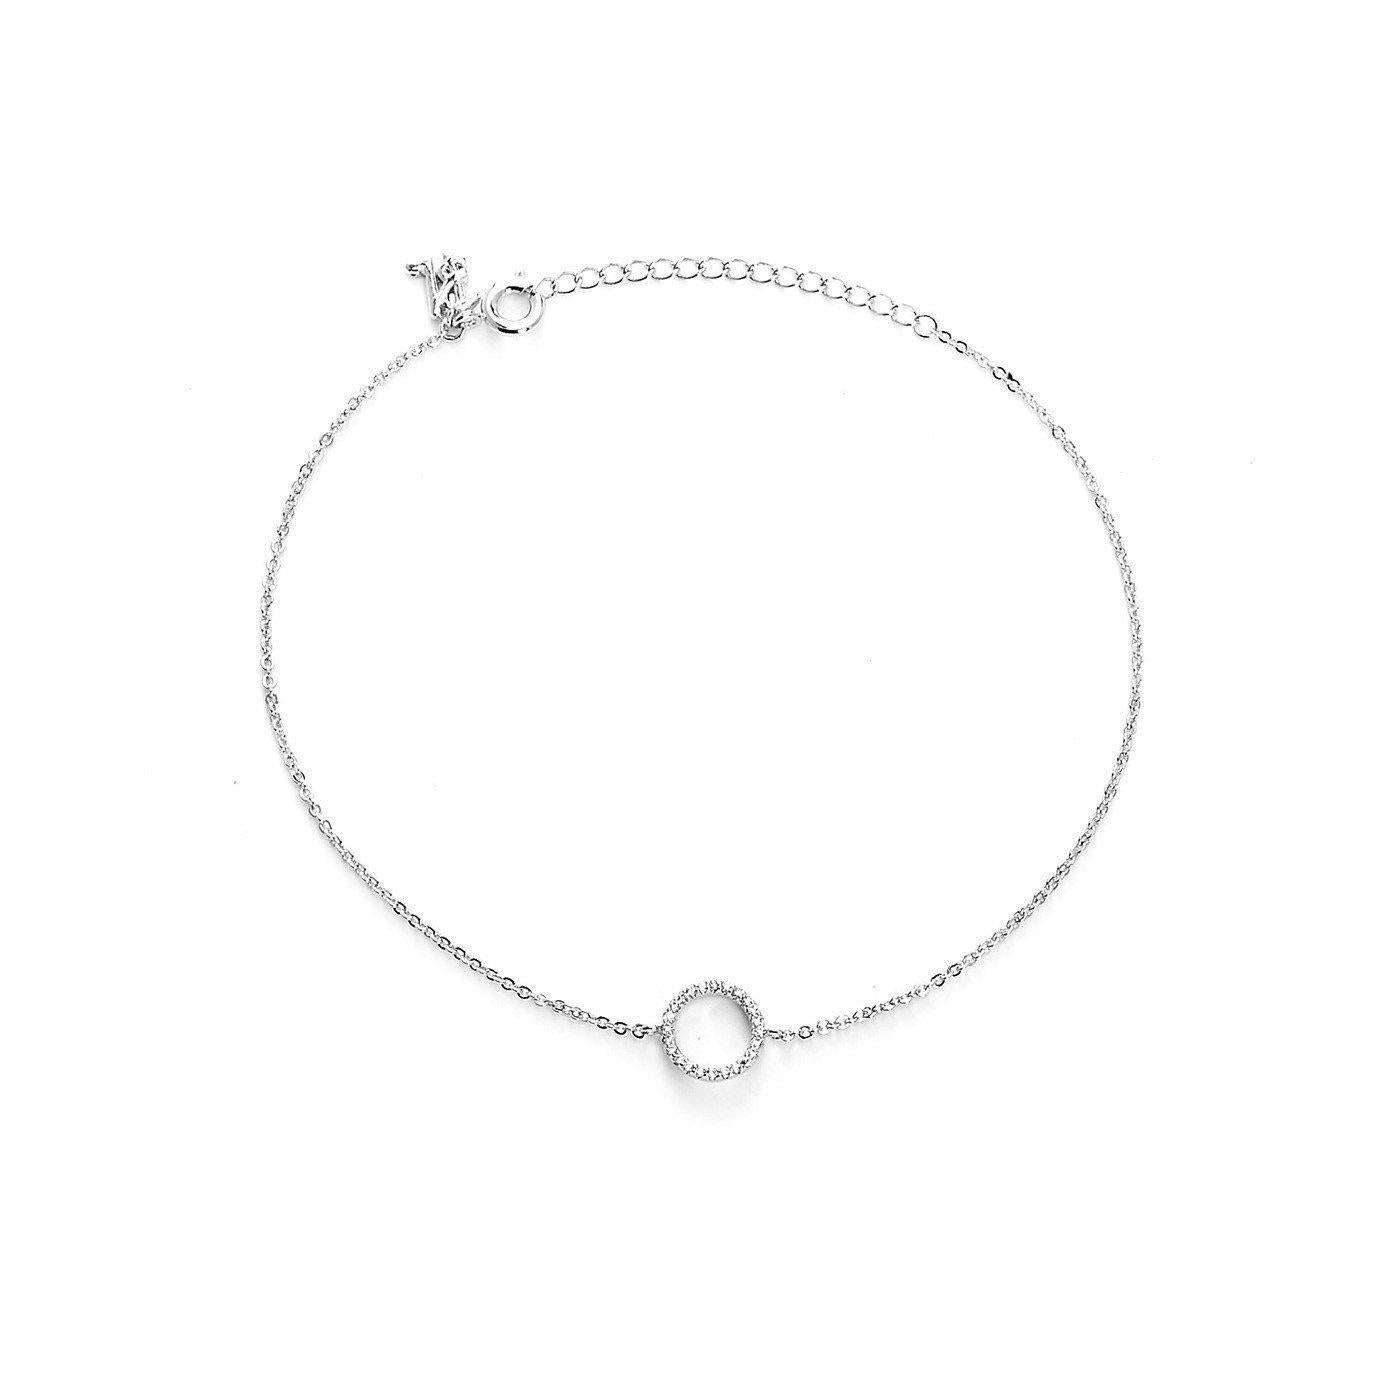 Your Initial O Anklet-Blinglane